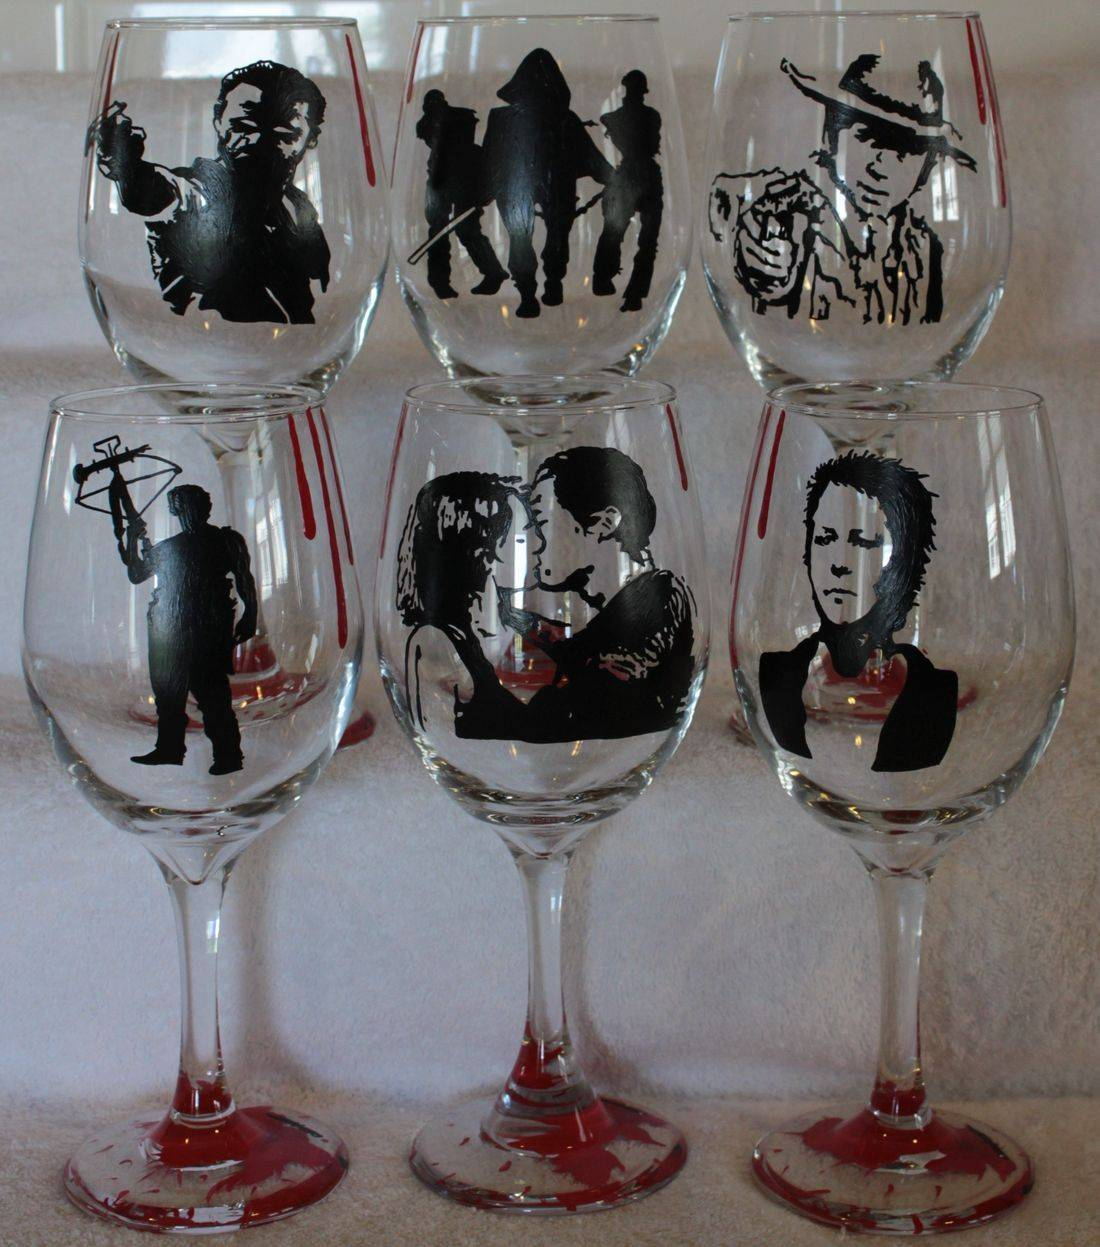 walking dead wine glass, rick wine glass, daryl wine glass, maggie wine glass, glen wine glass